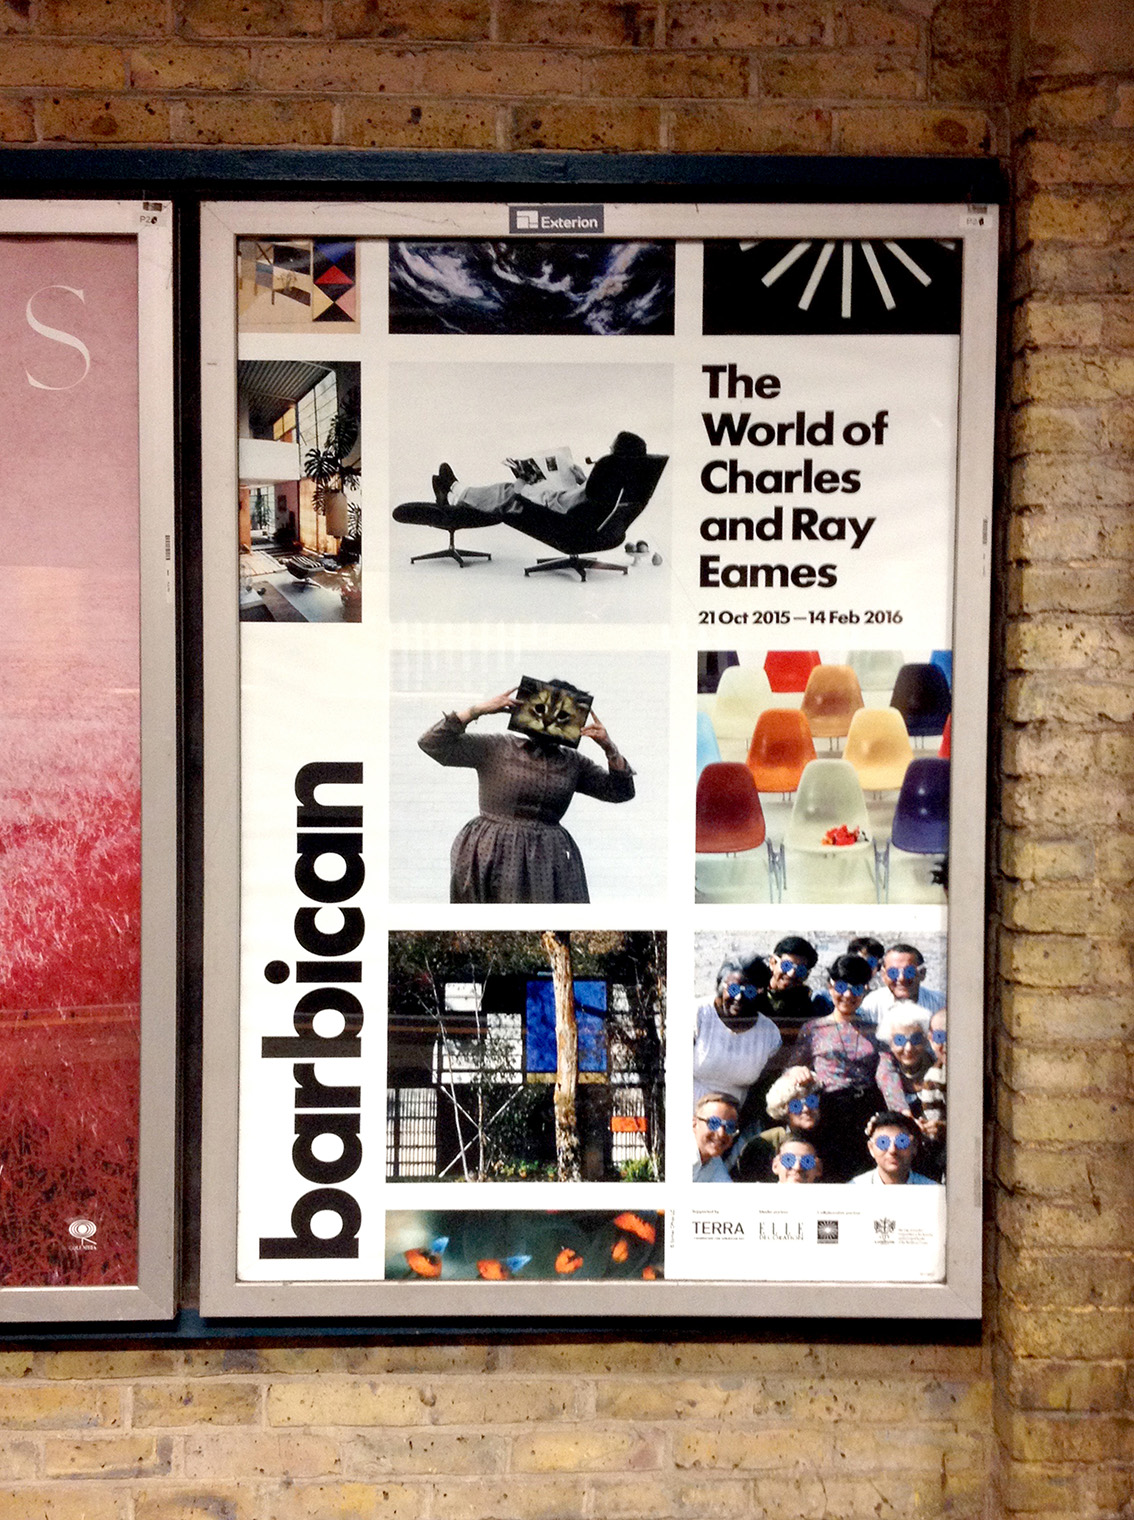 Eames at the Barbican